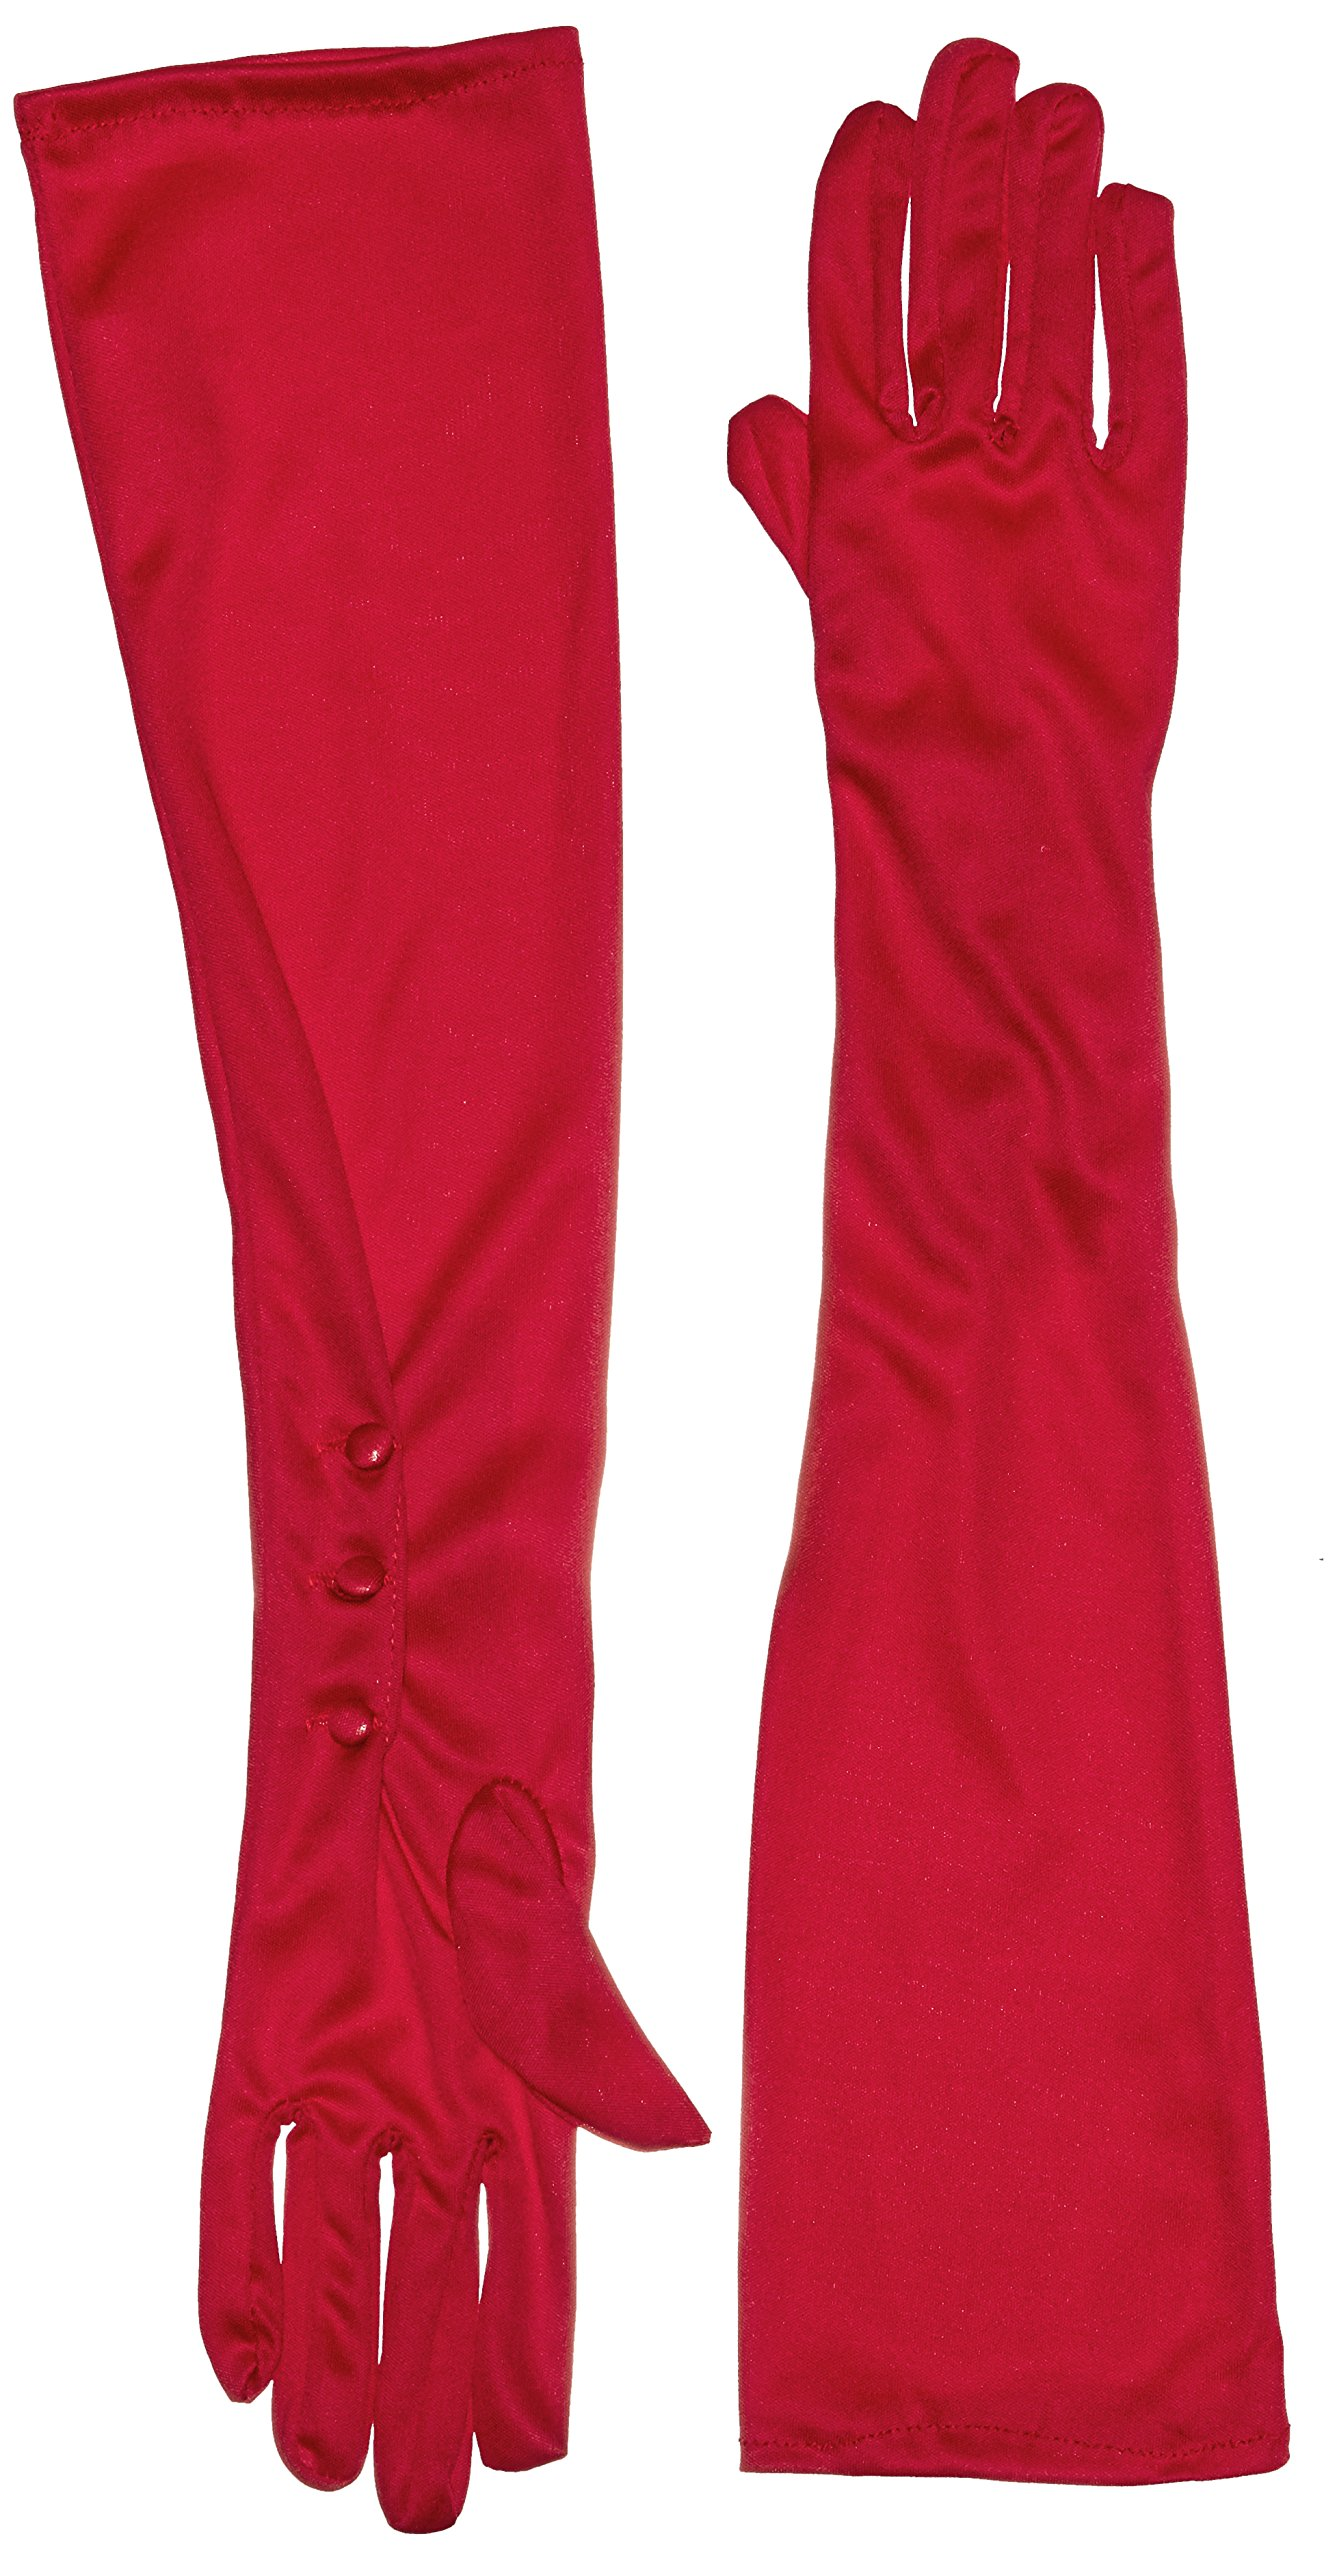 Secret Wishes Long Red Costume Gloves, Red, One Size